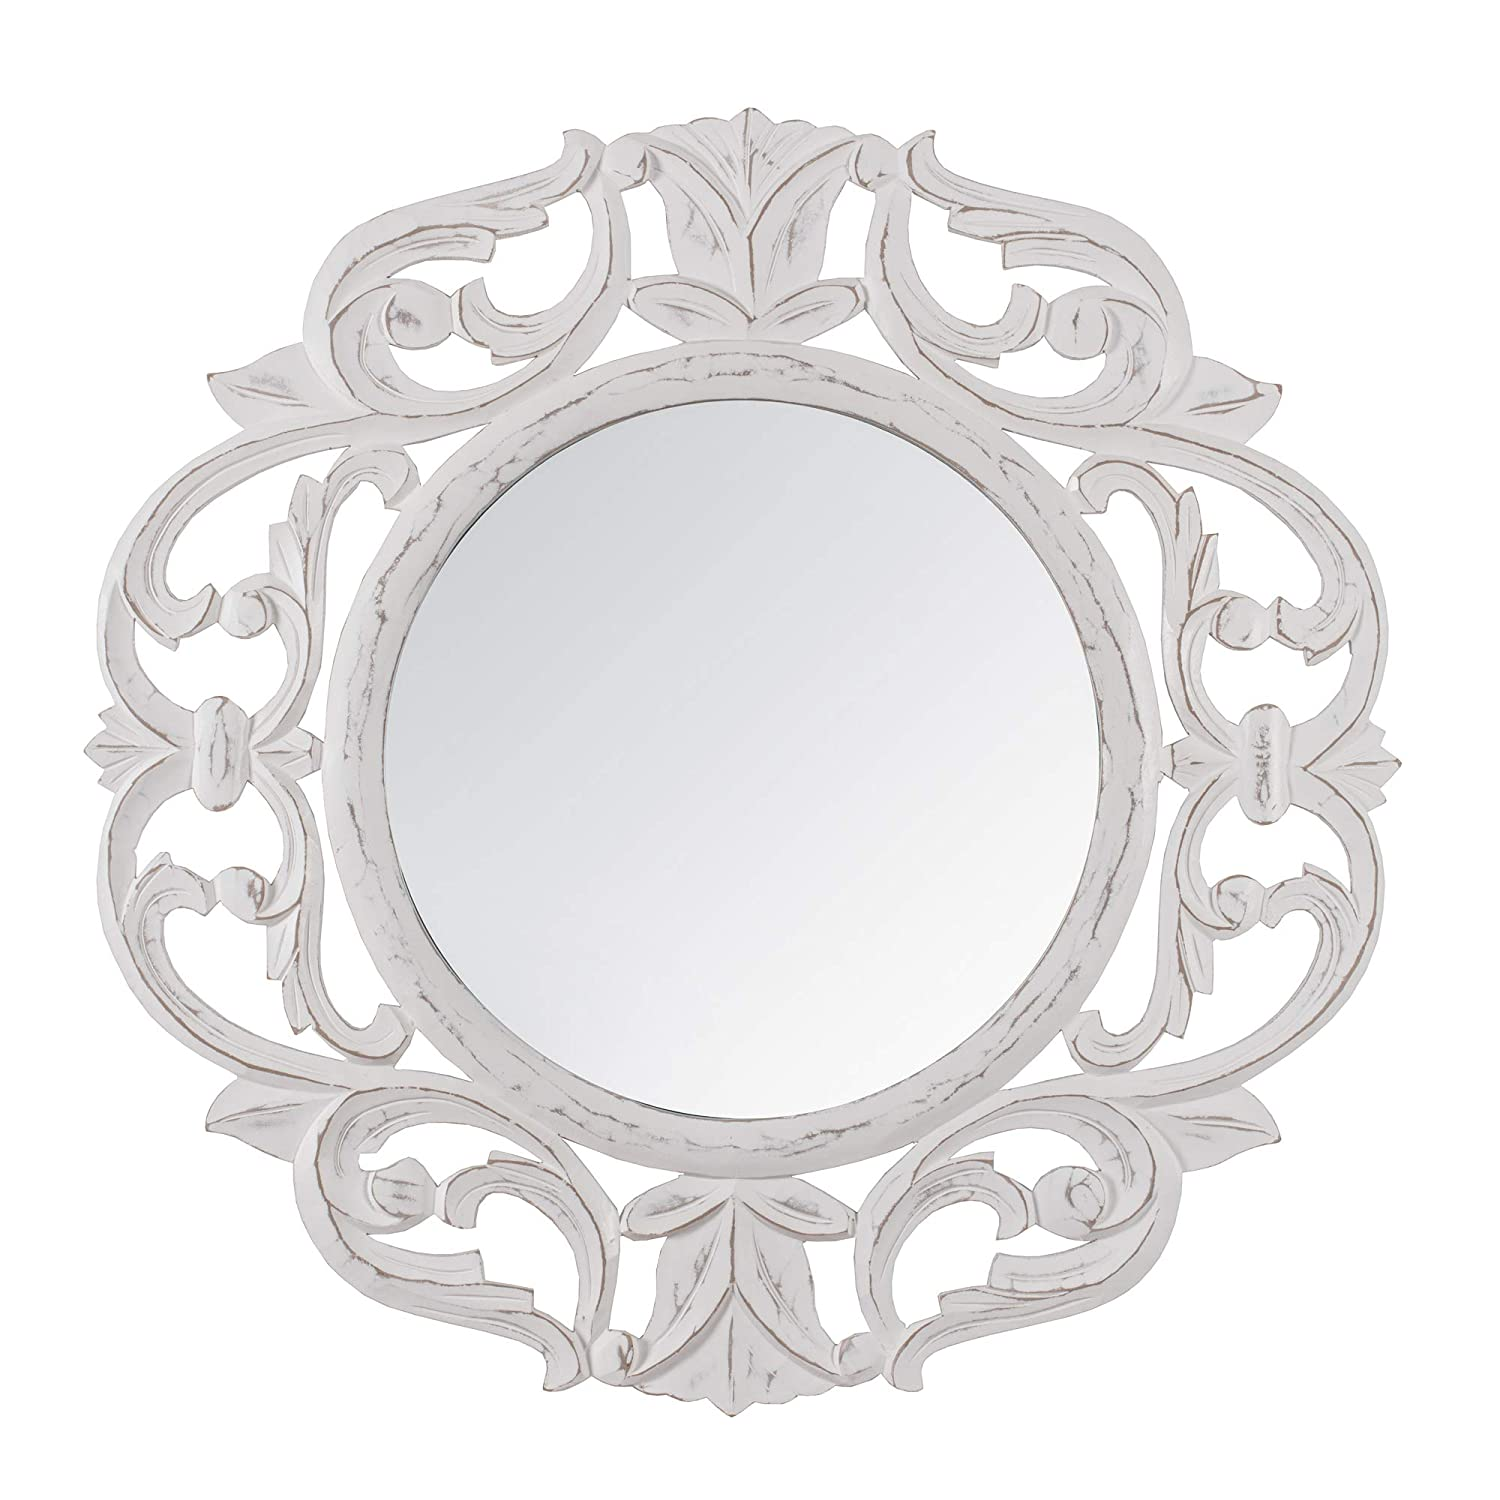 "Madeleine Home Alba Decorative Wall Mirror | Minimalistic & Modern Carved Wall Mount Accent Mirror Perfect for Bathroom, Powder Room, Hallway, Living Room | 24"" Round, White"